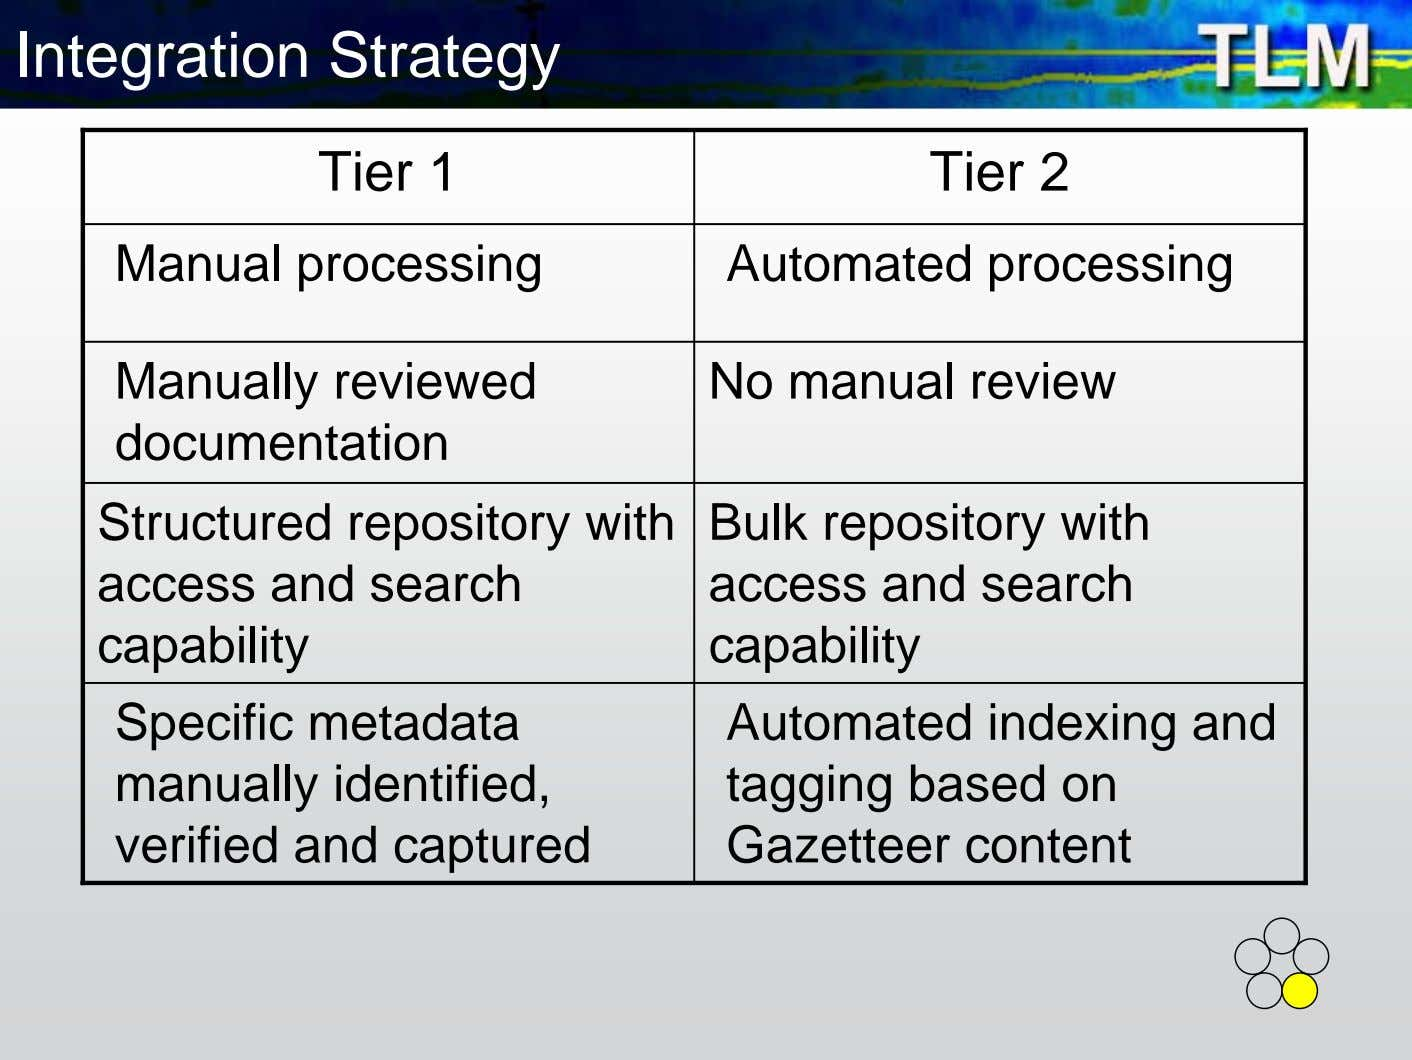 Integration Strategy Tier 1 Tier 2 Manual processing Automated processing Manually reviewed documentation No manual